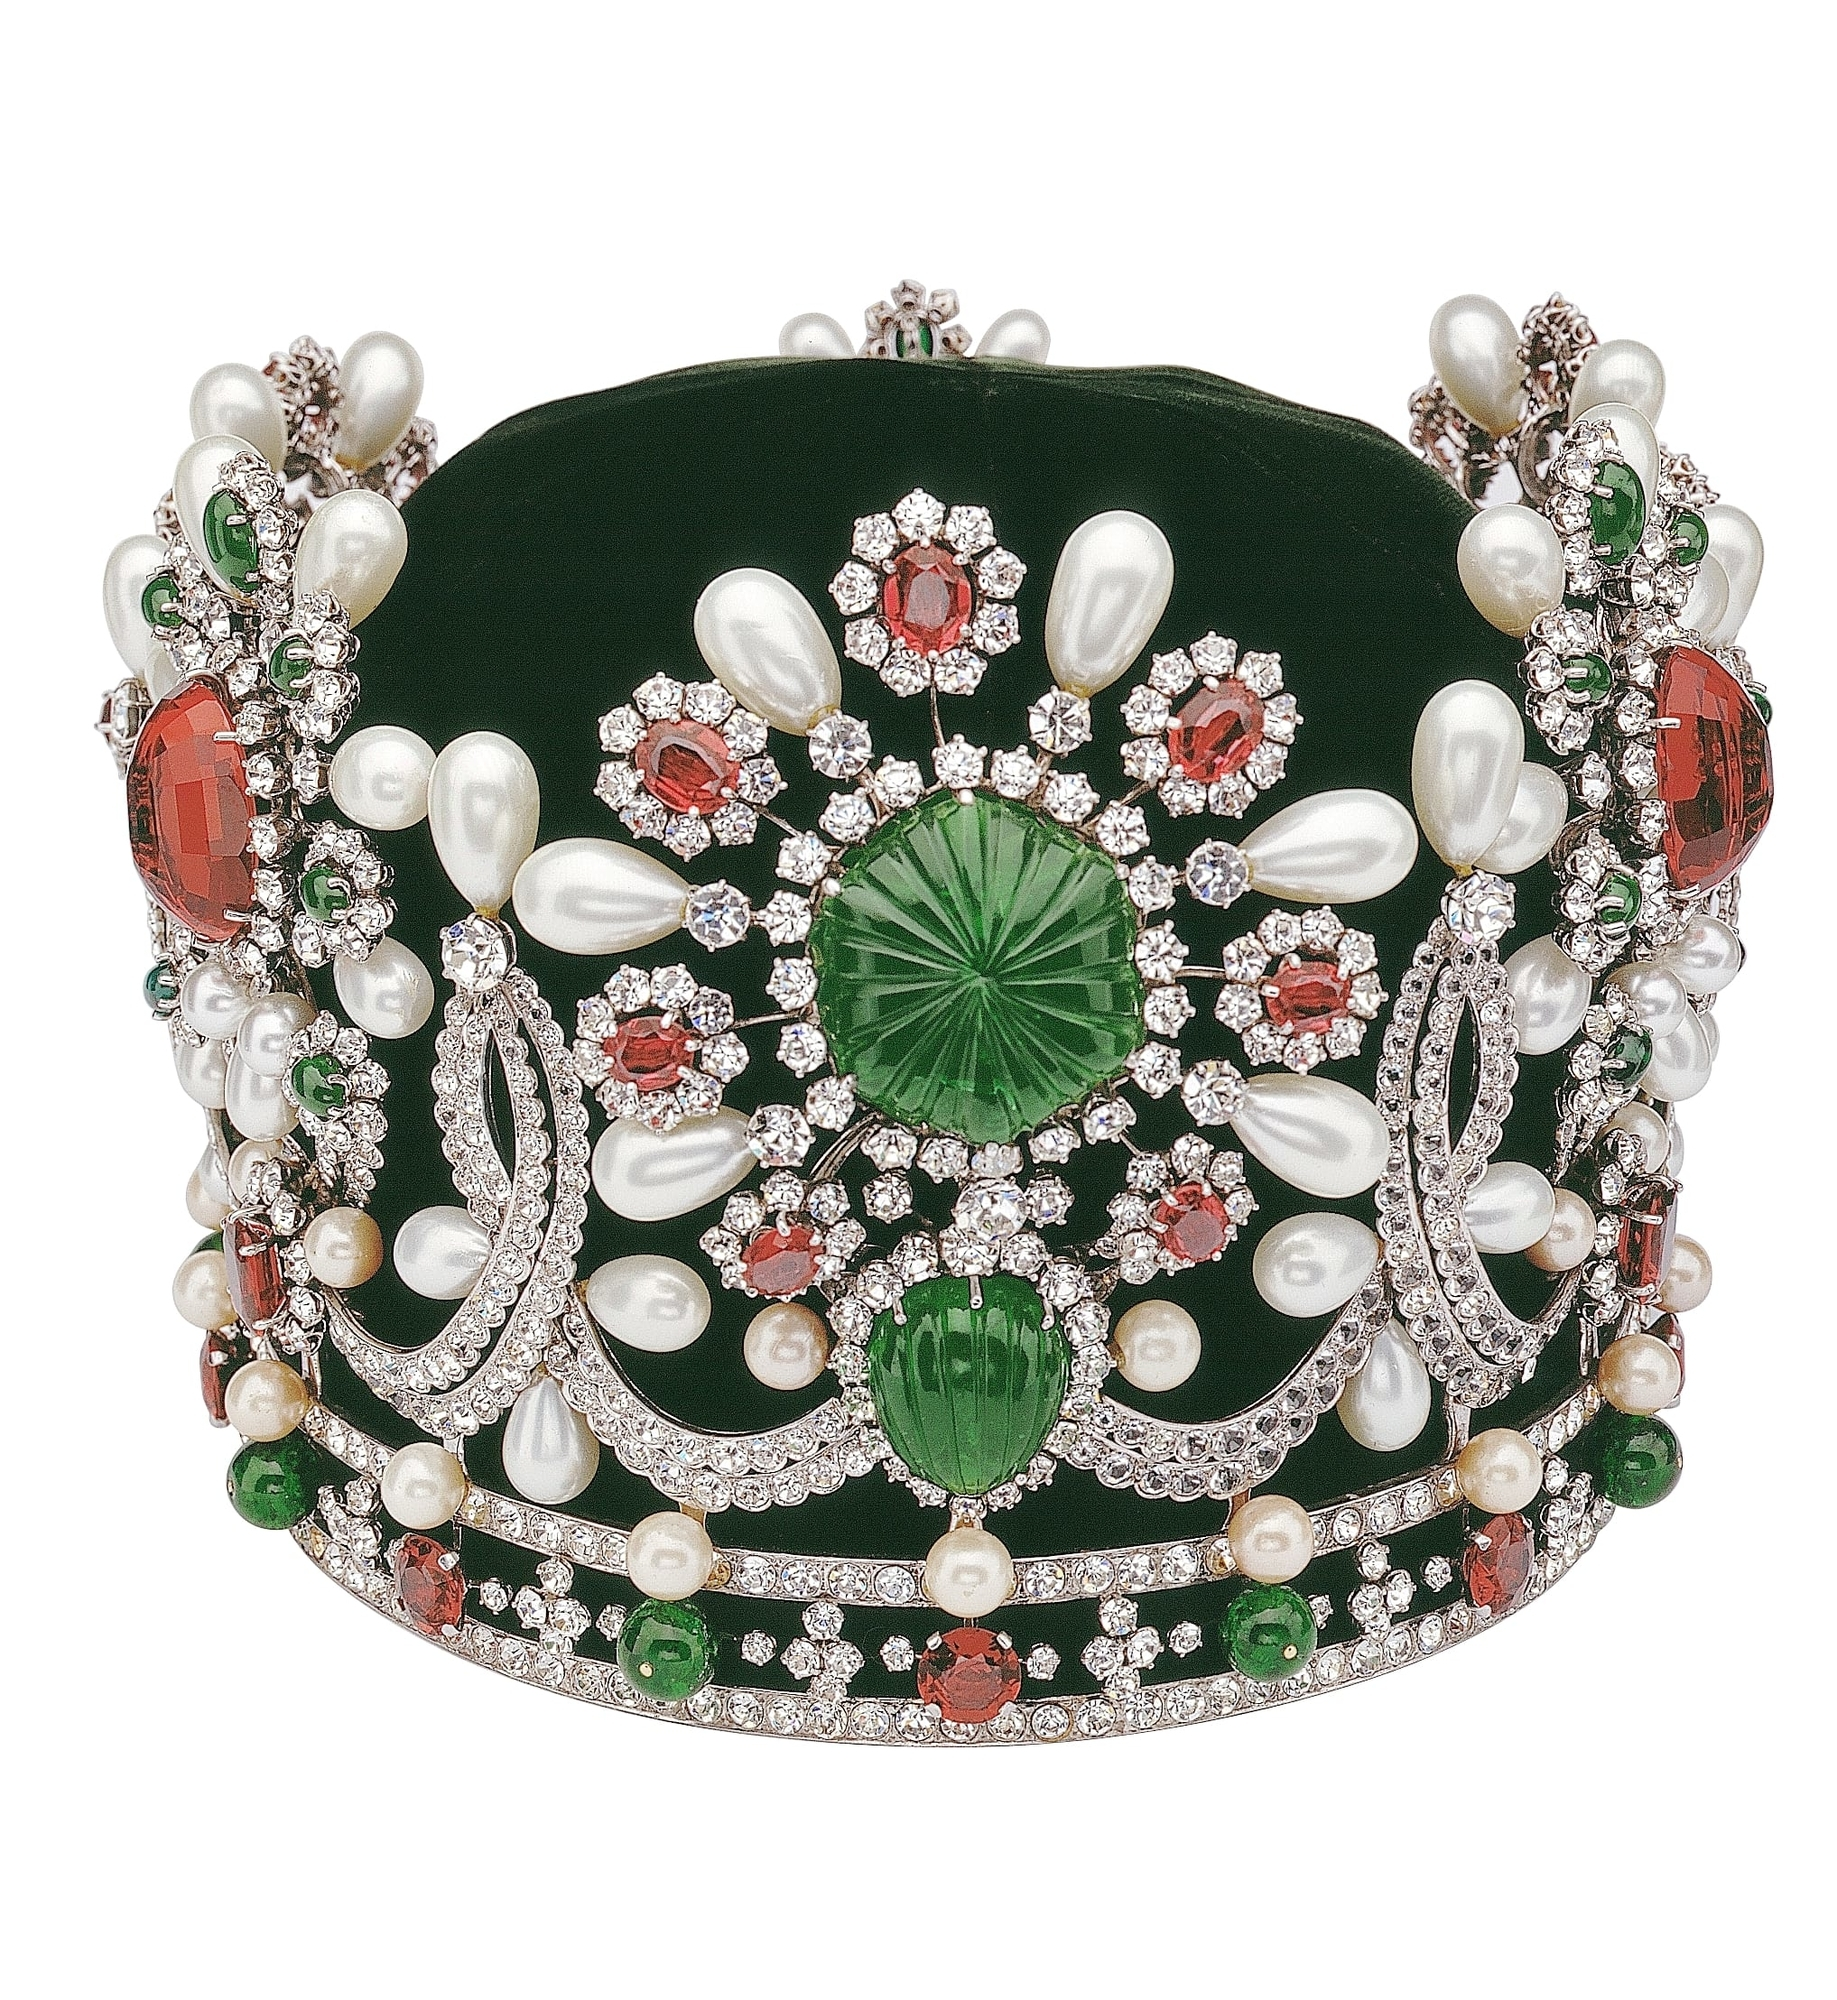 A Century Of High Jewellery To Be Displayed for the First Time in the Middle East